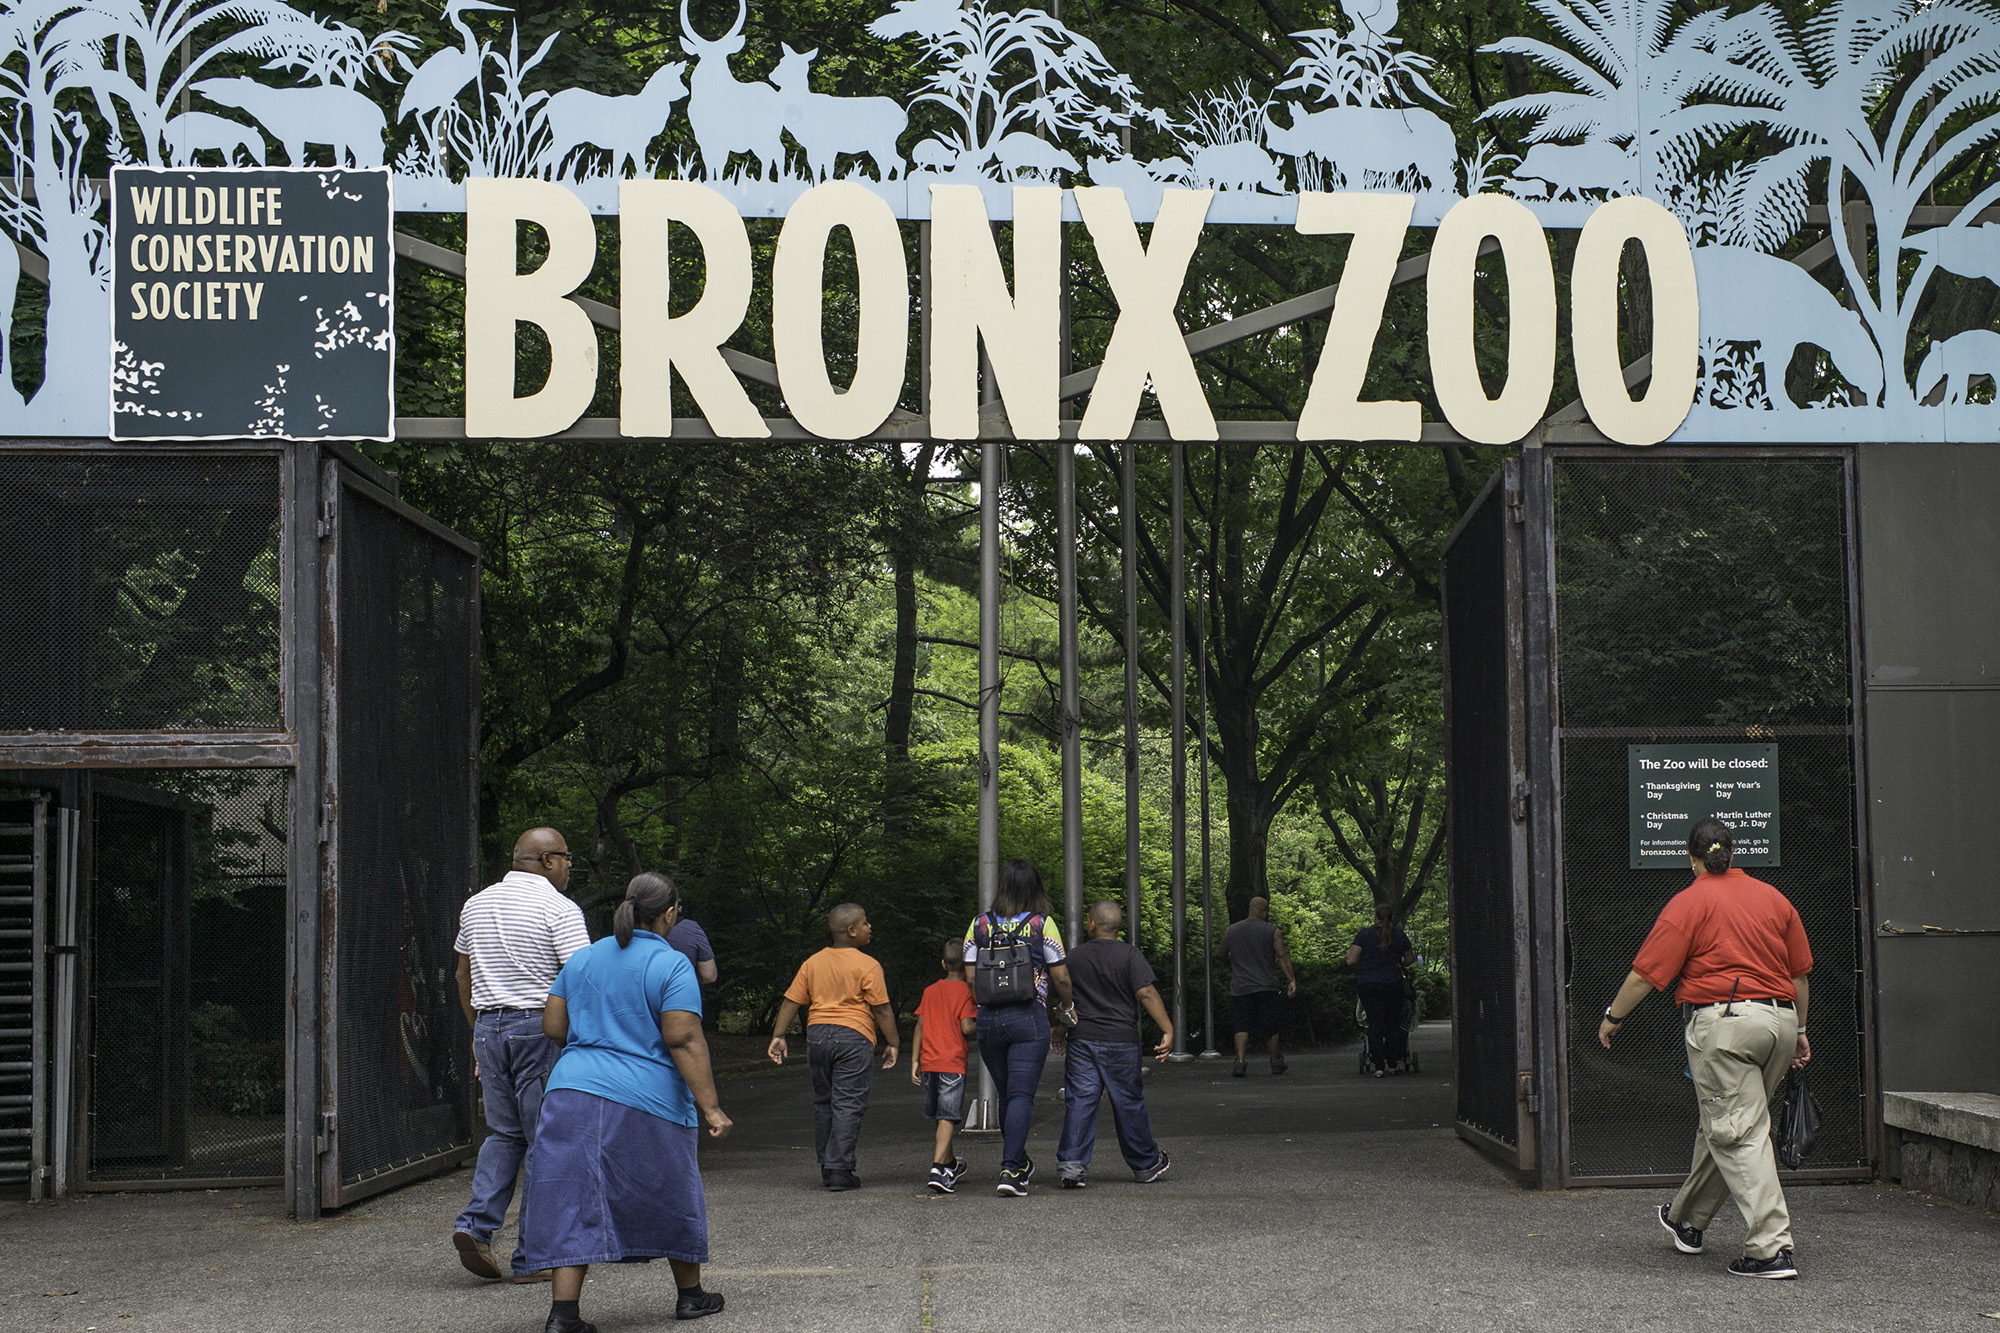 The Bronx Zoo gorillas have been observed adopting a 69 position before.